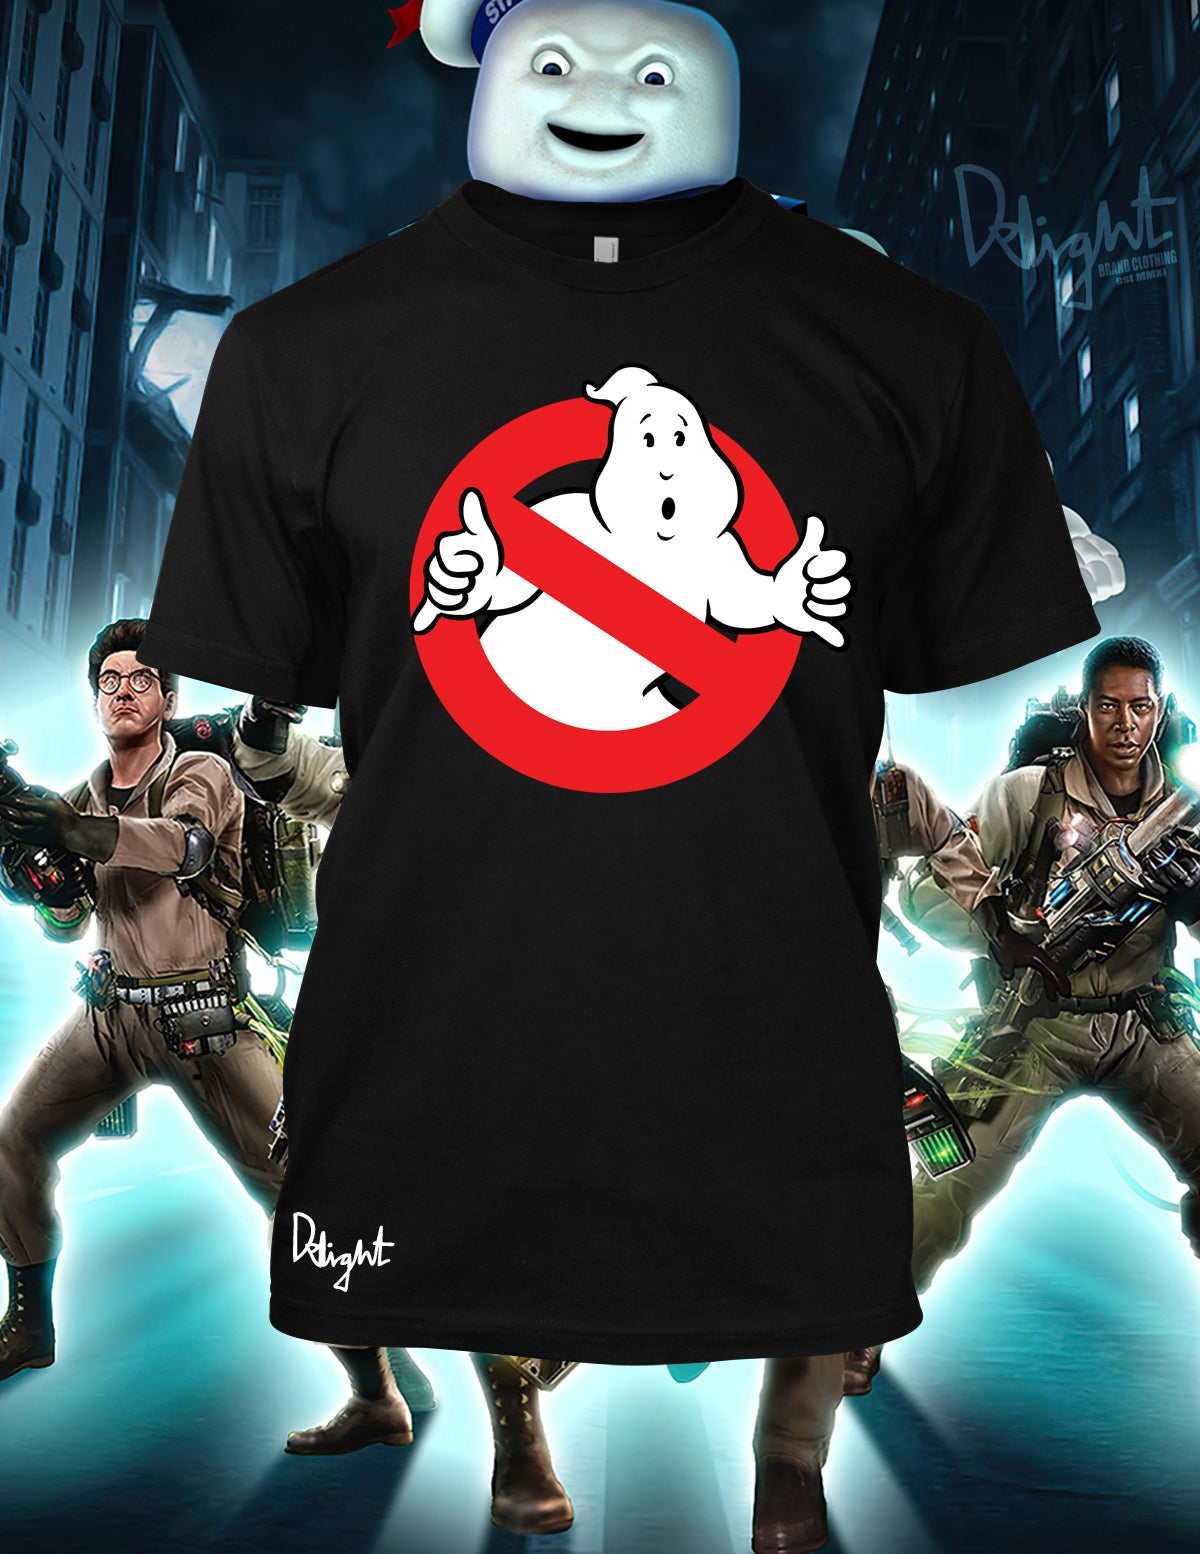 Ghost Bustah T-shirt (Black) Adults & Kids Sizes